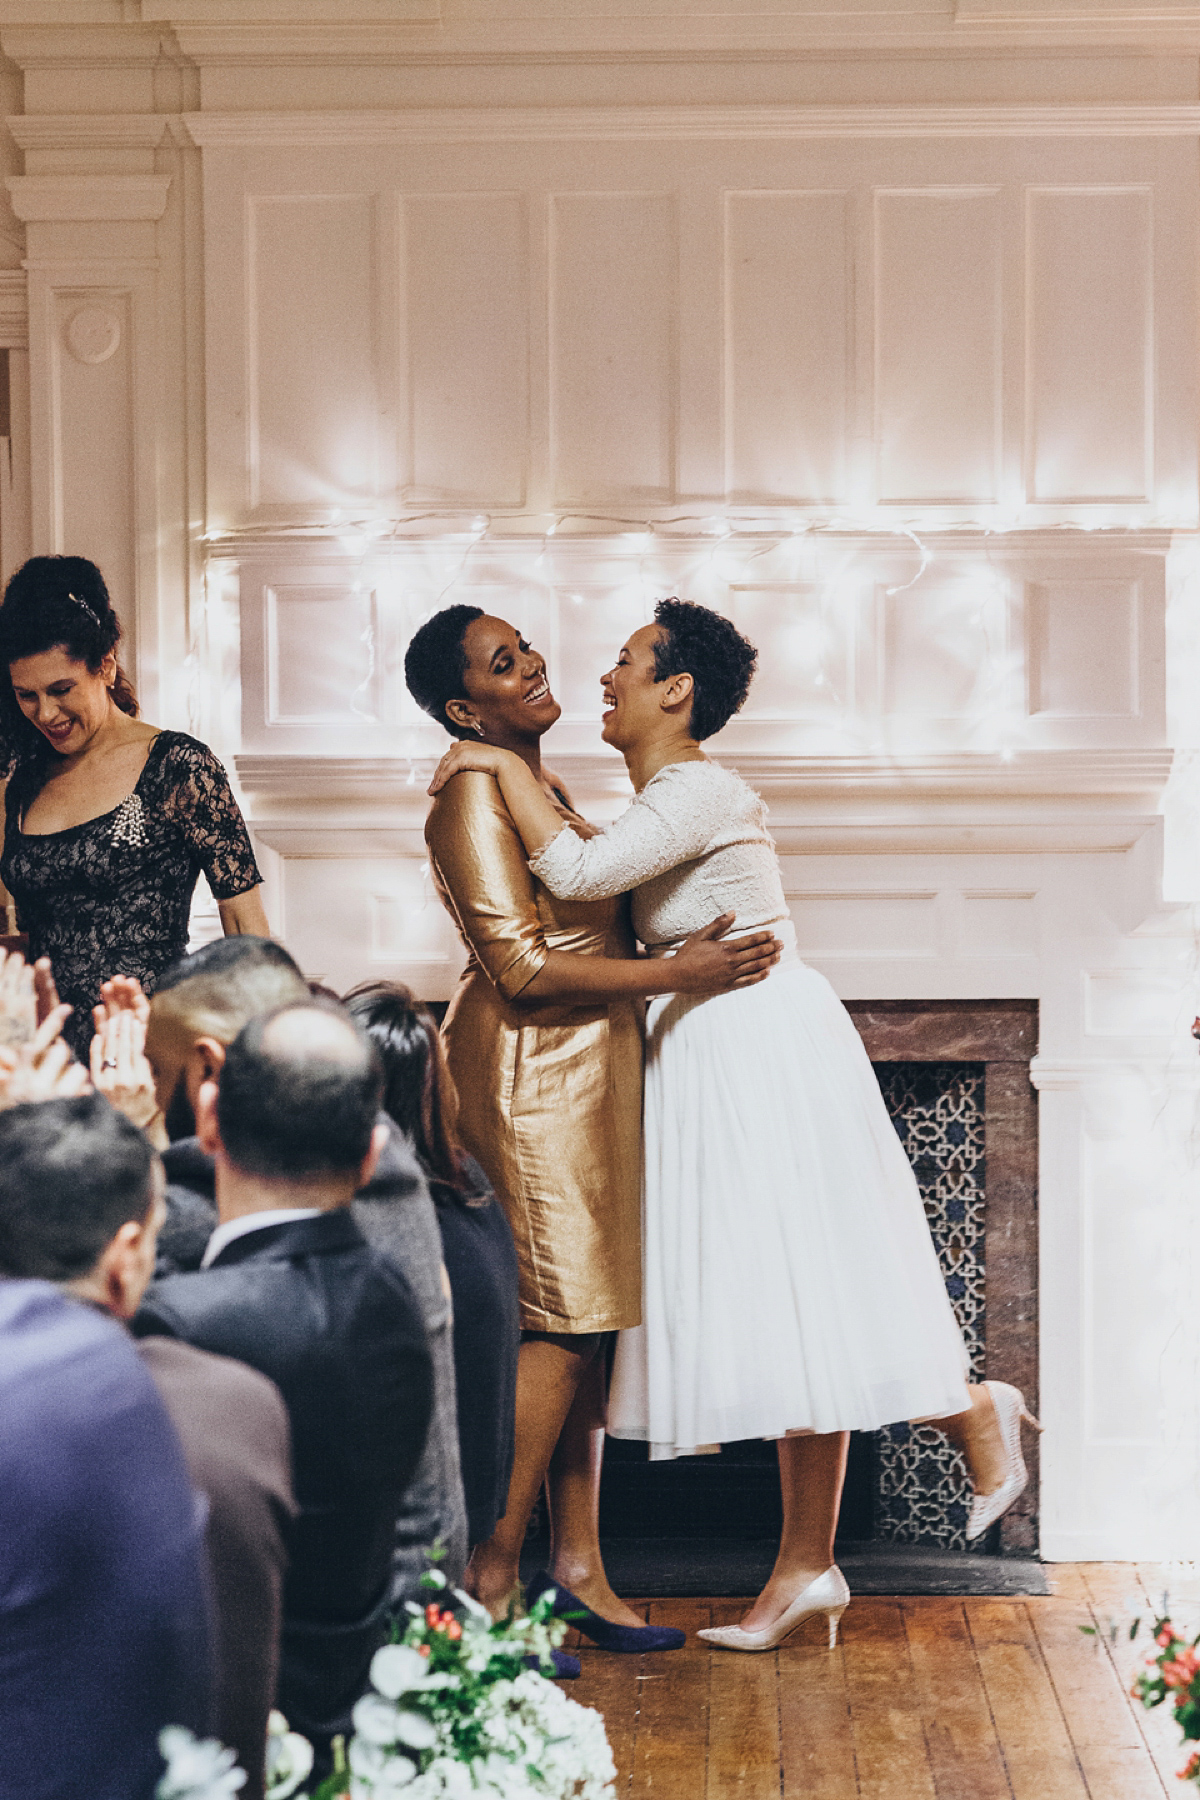 Pure 100% Love – A Music, Food and West Indian Inspired City Wedding